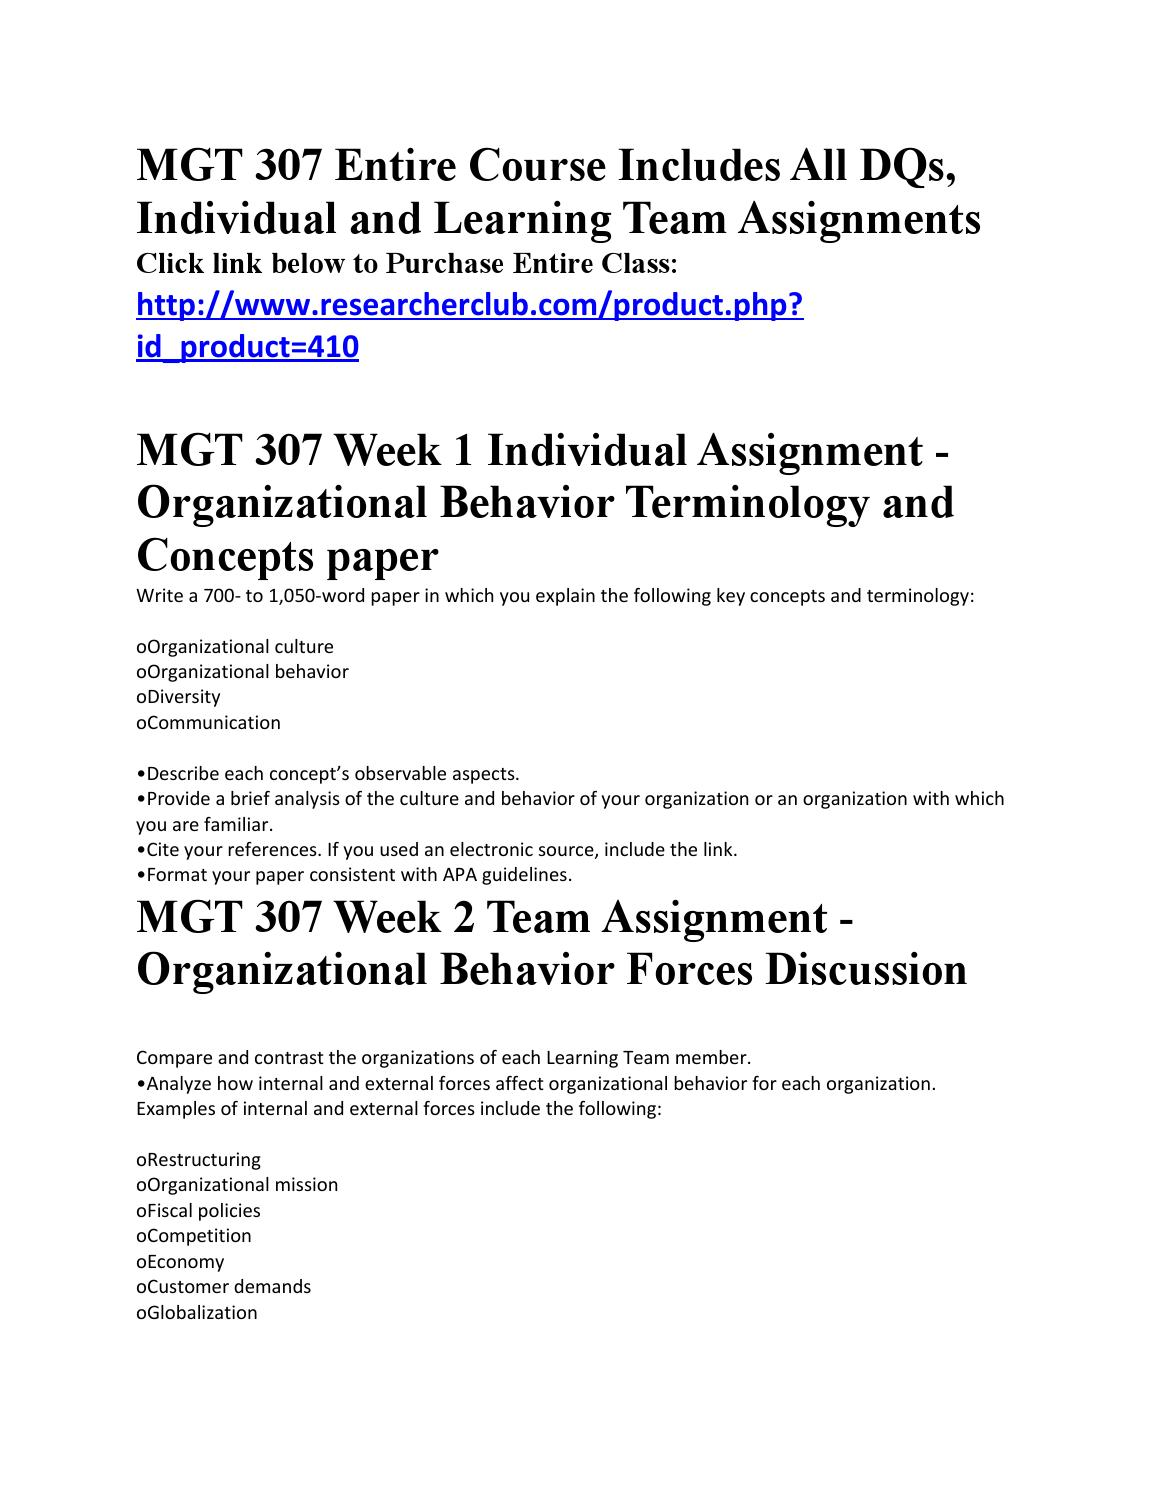 organizational behavior terminology and concepts paper mgt 307 Week 1 individual and team assignments and weekly summary: mgt307 wk 1 organizational behavior terminology and concepts paper mgt307 wk 1 summary.